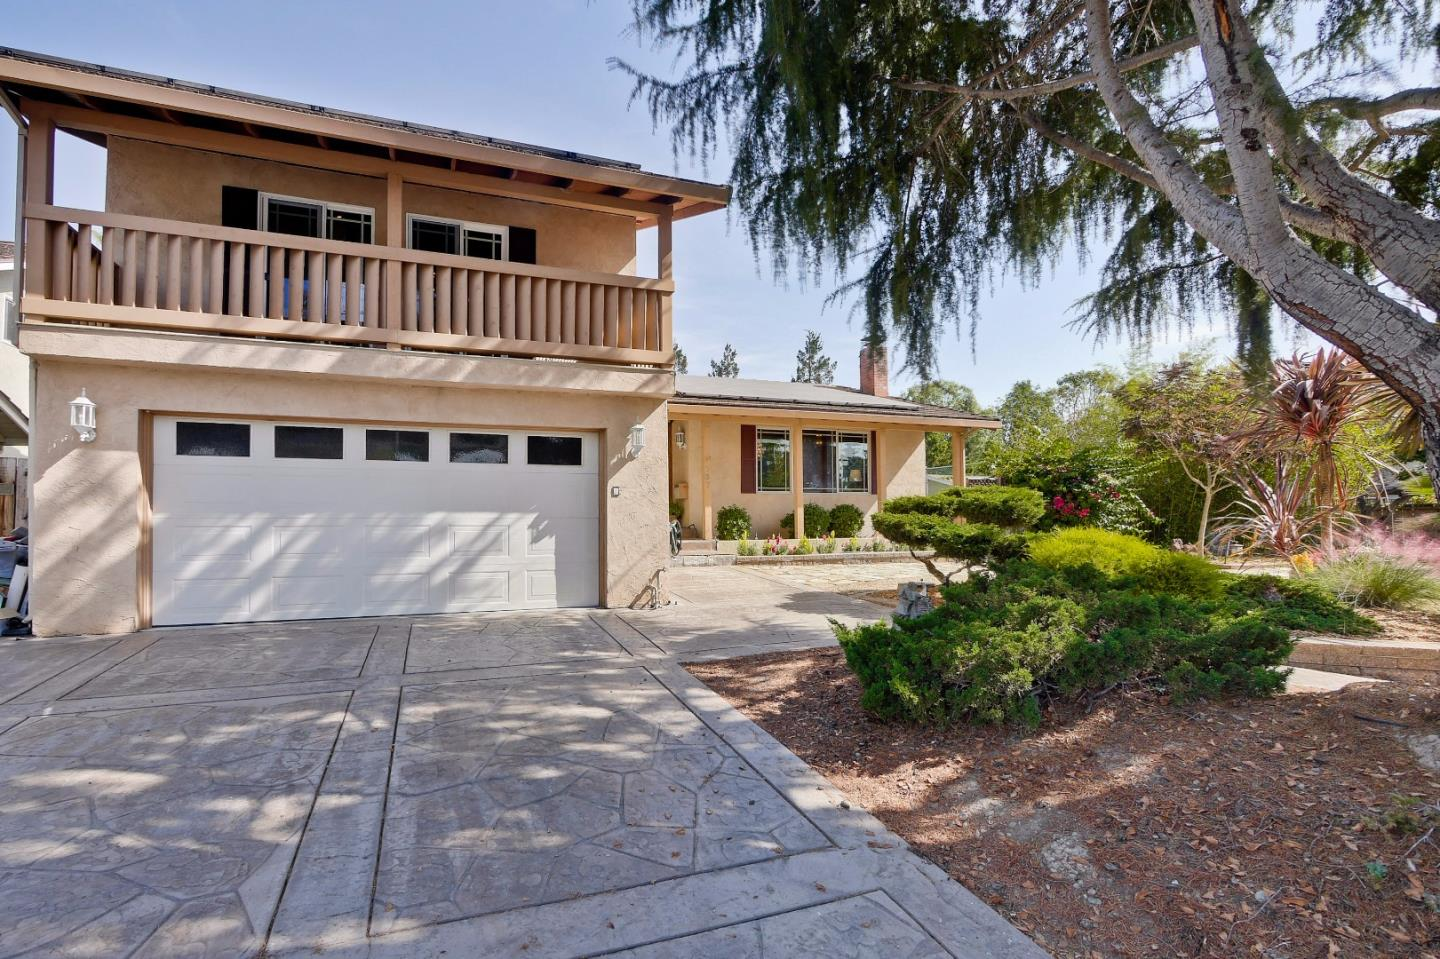 Single Family Home for Sale at 737 Chopin Drive 737 Chopin Drive Sunnyvale, California 94087 United States